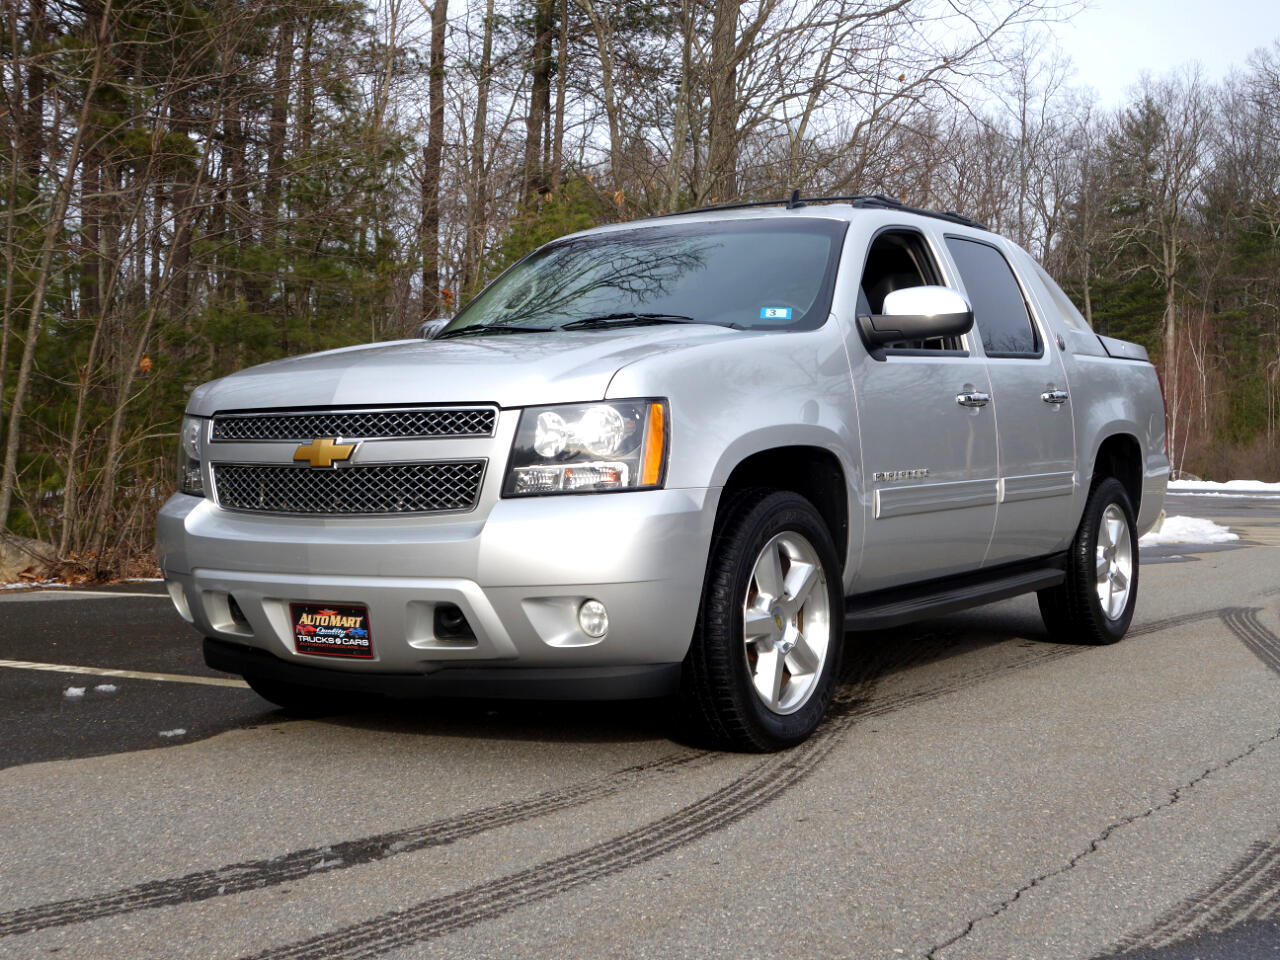 Chevrolet Avalanche 4WD Crew Cab LT 2013